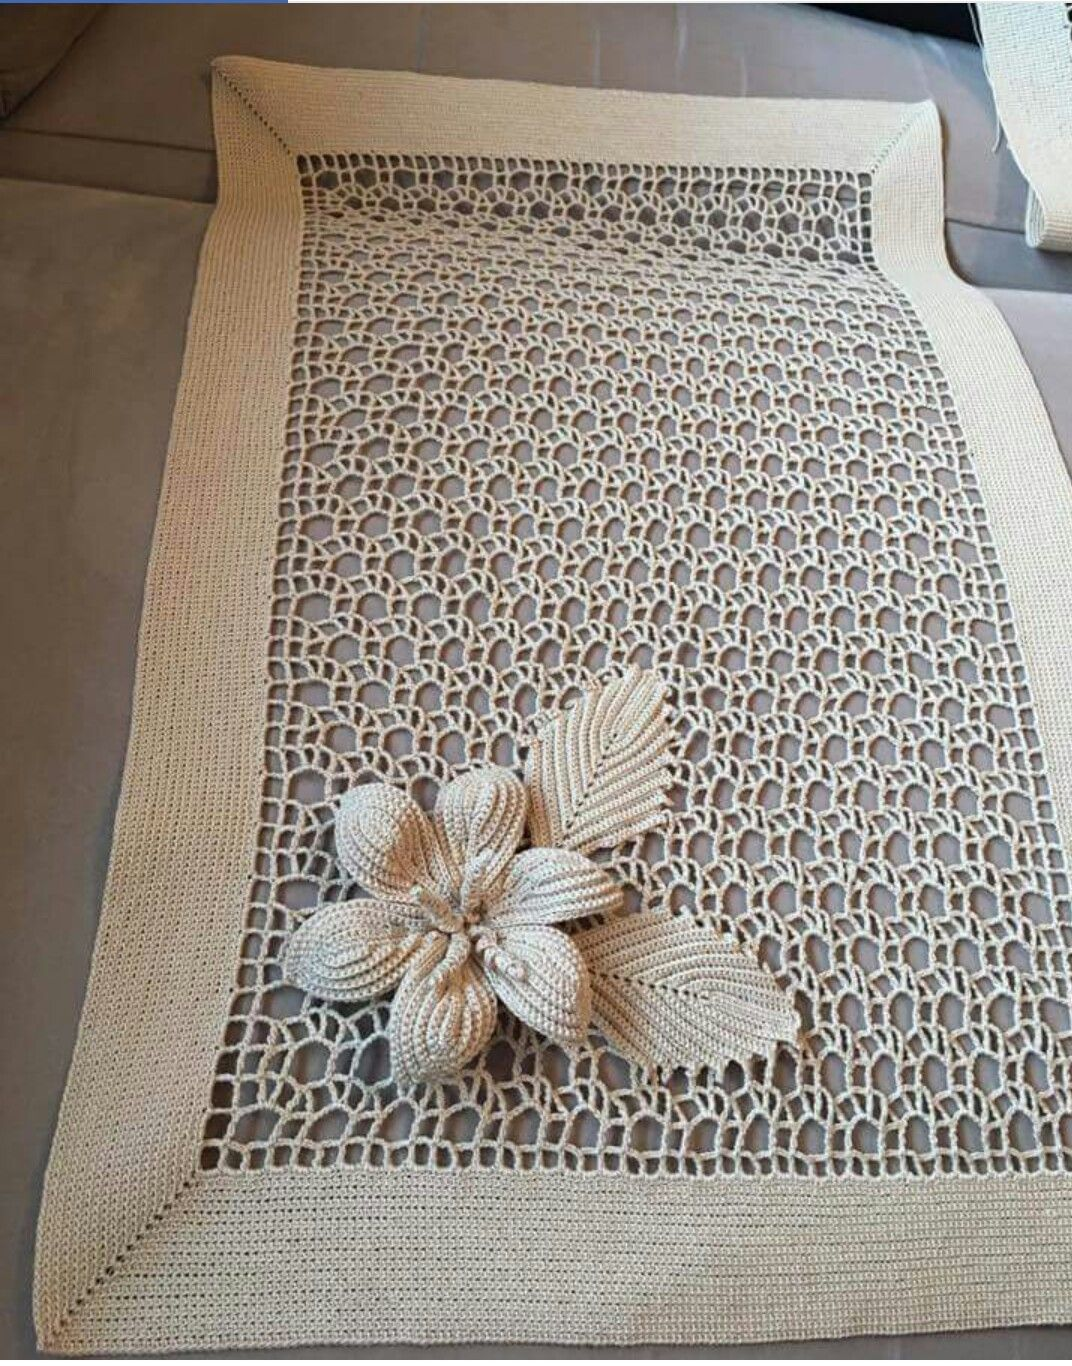 Pin By Adriana Banguera On Patrones De Ganchillo Pinterest Crochet Doily Diagram 2 Patterns Chart Filet Lace Flowers Irish